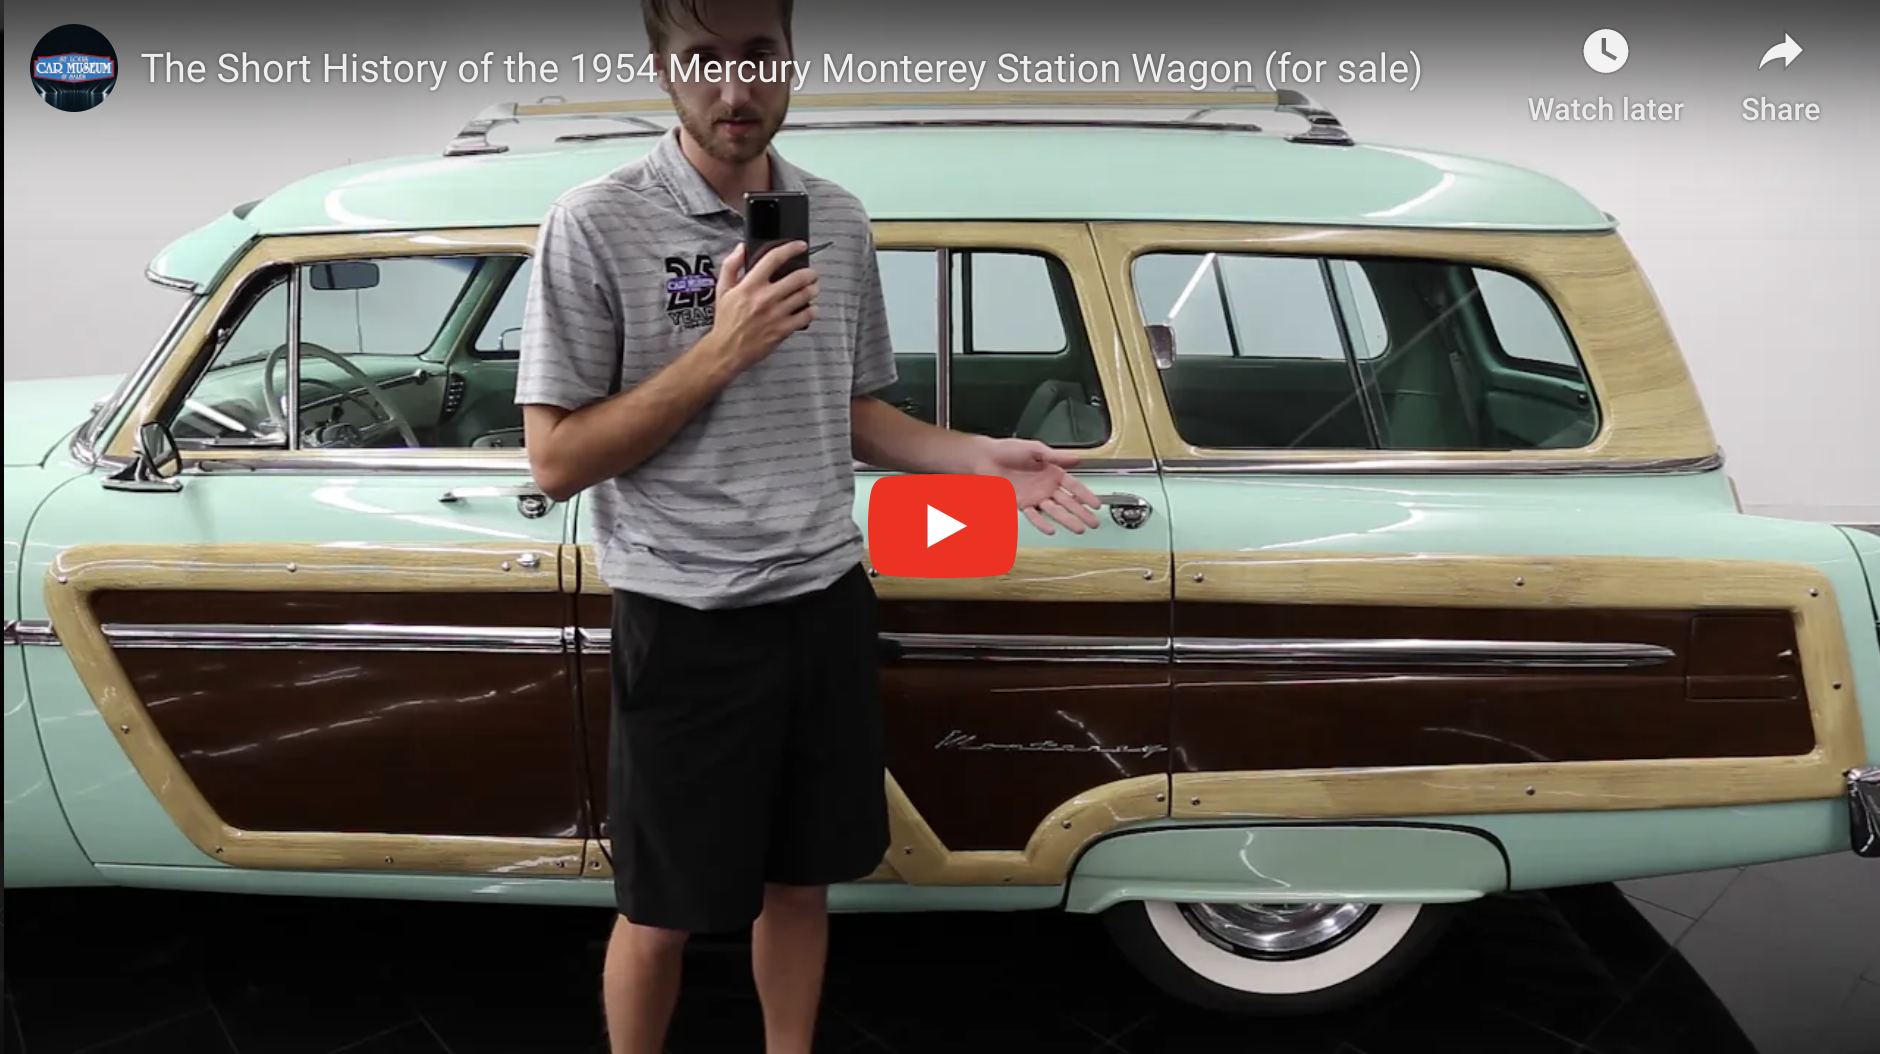 The Short History of the 1954 Mercury Monterey Station Wagon (for sale)